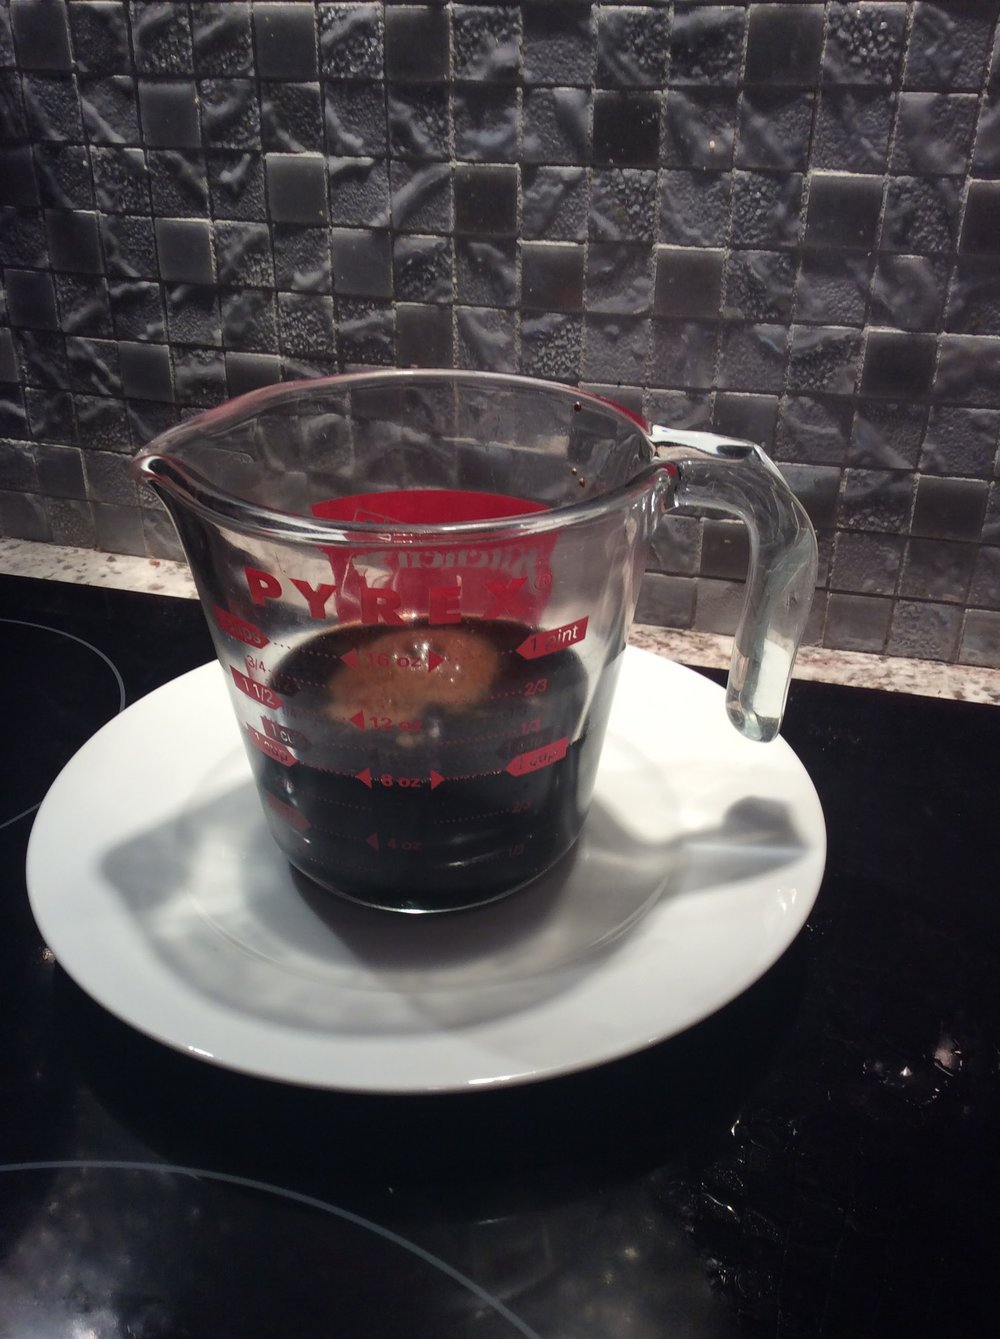 Pour the cola syrup into a heatproof glass container.